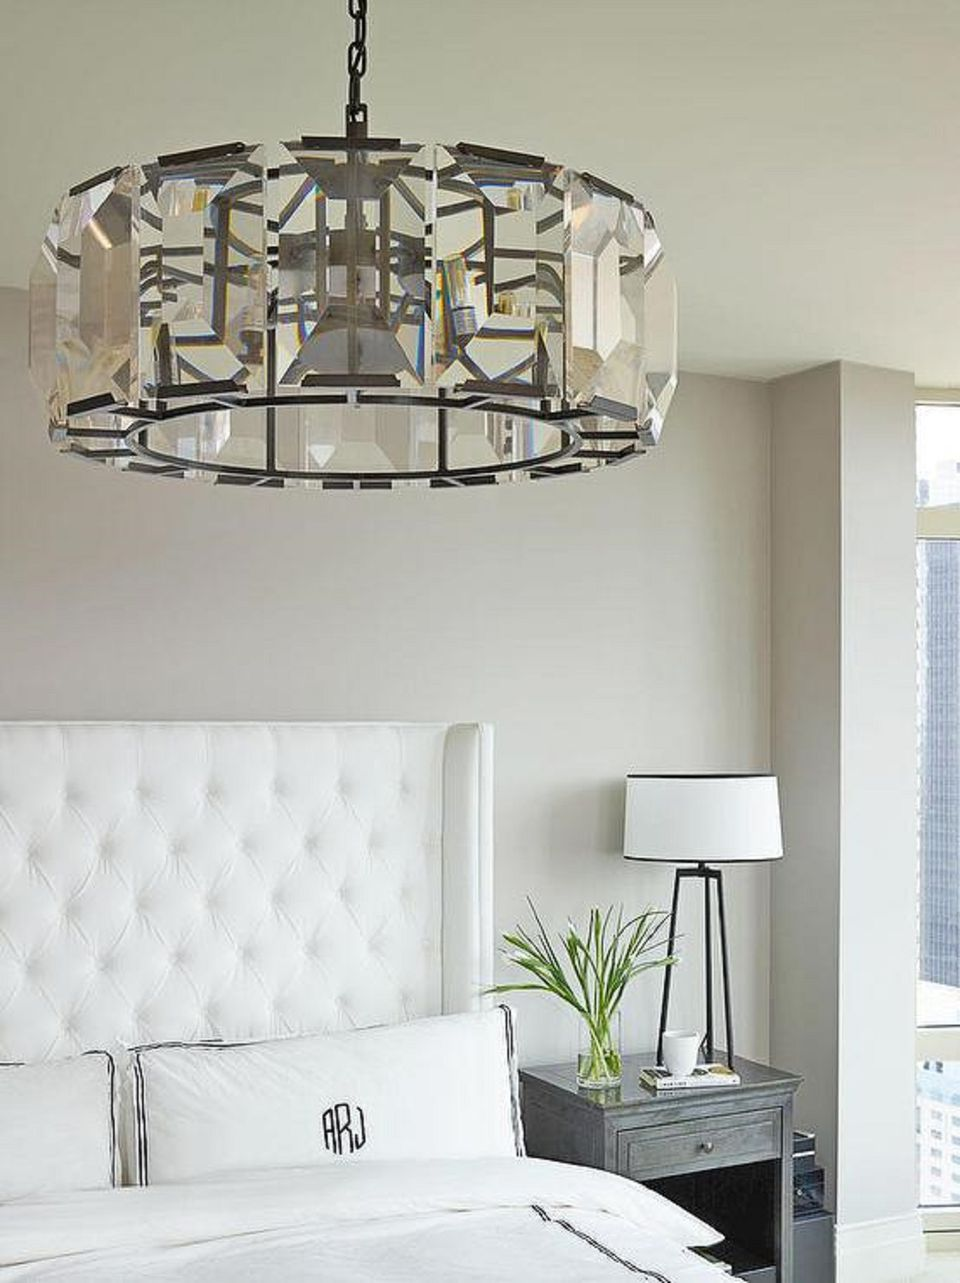 25 master bedroom lighting ideas crystal drum light fixture in bedroom mozeypictures Choice Image